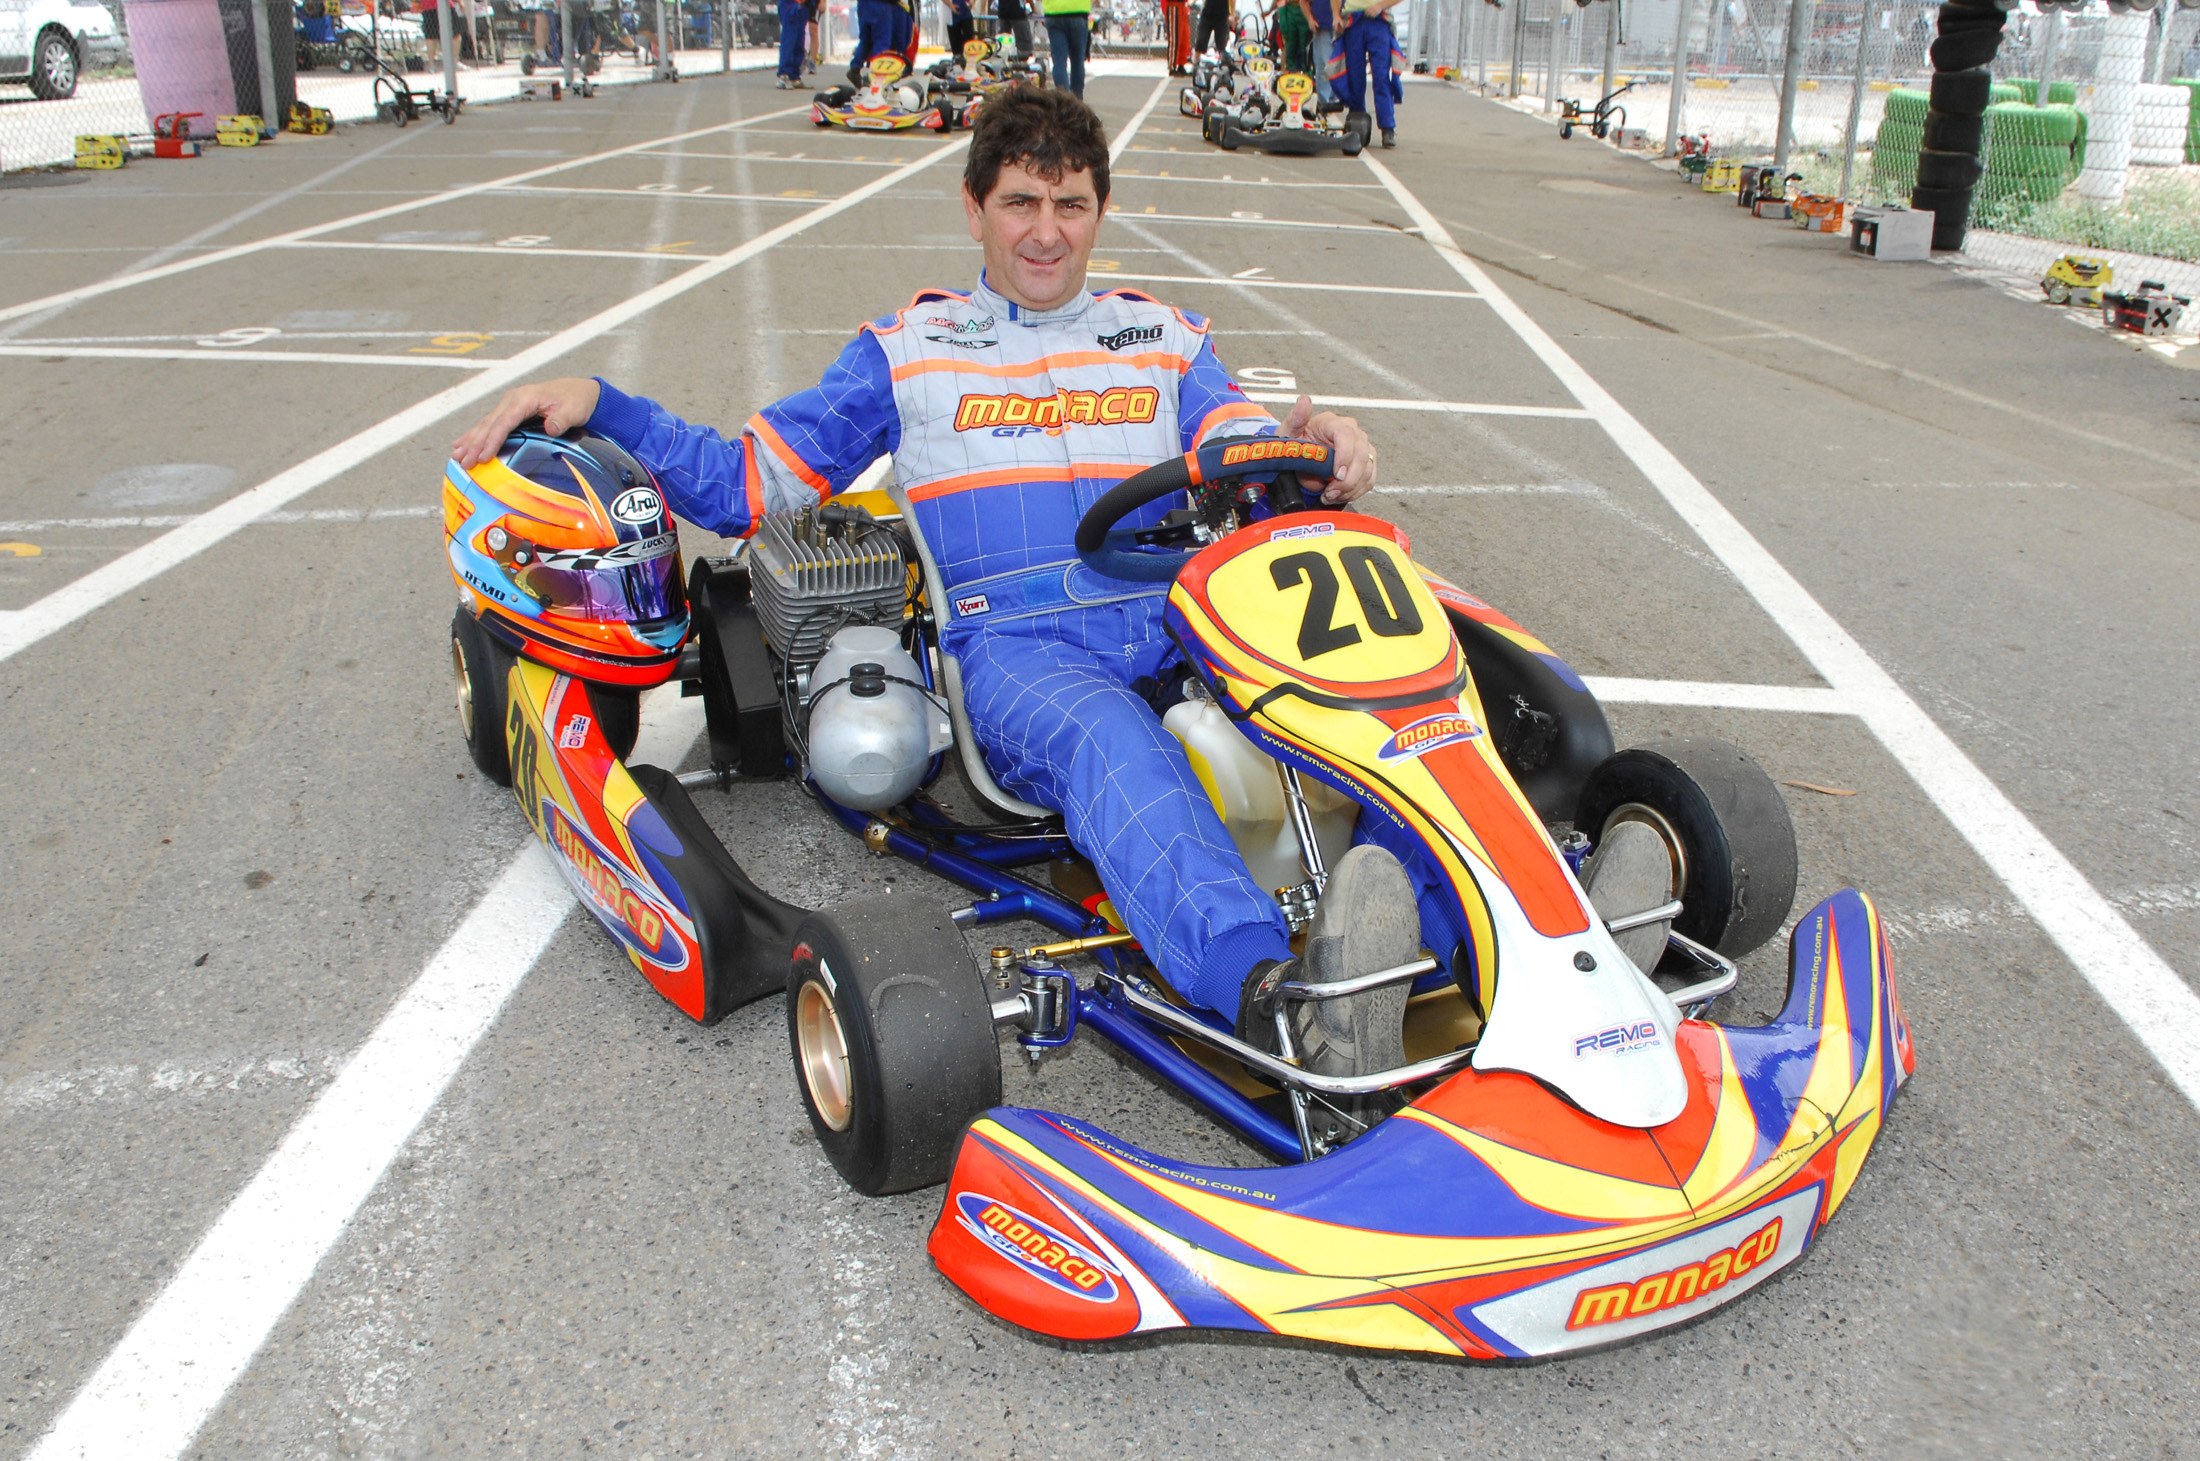 Luciani aiming for title number 50